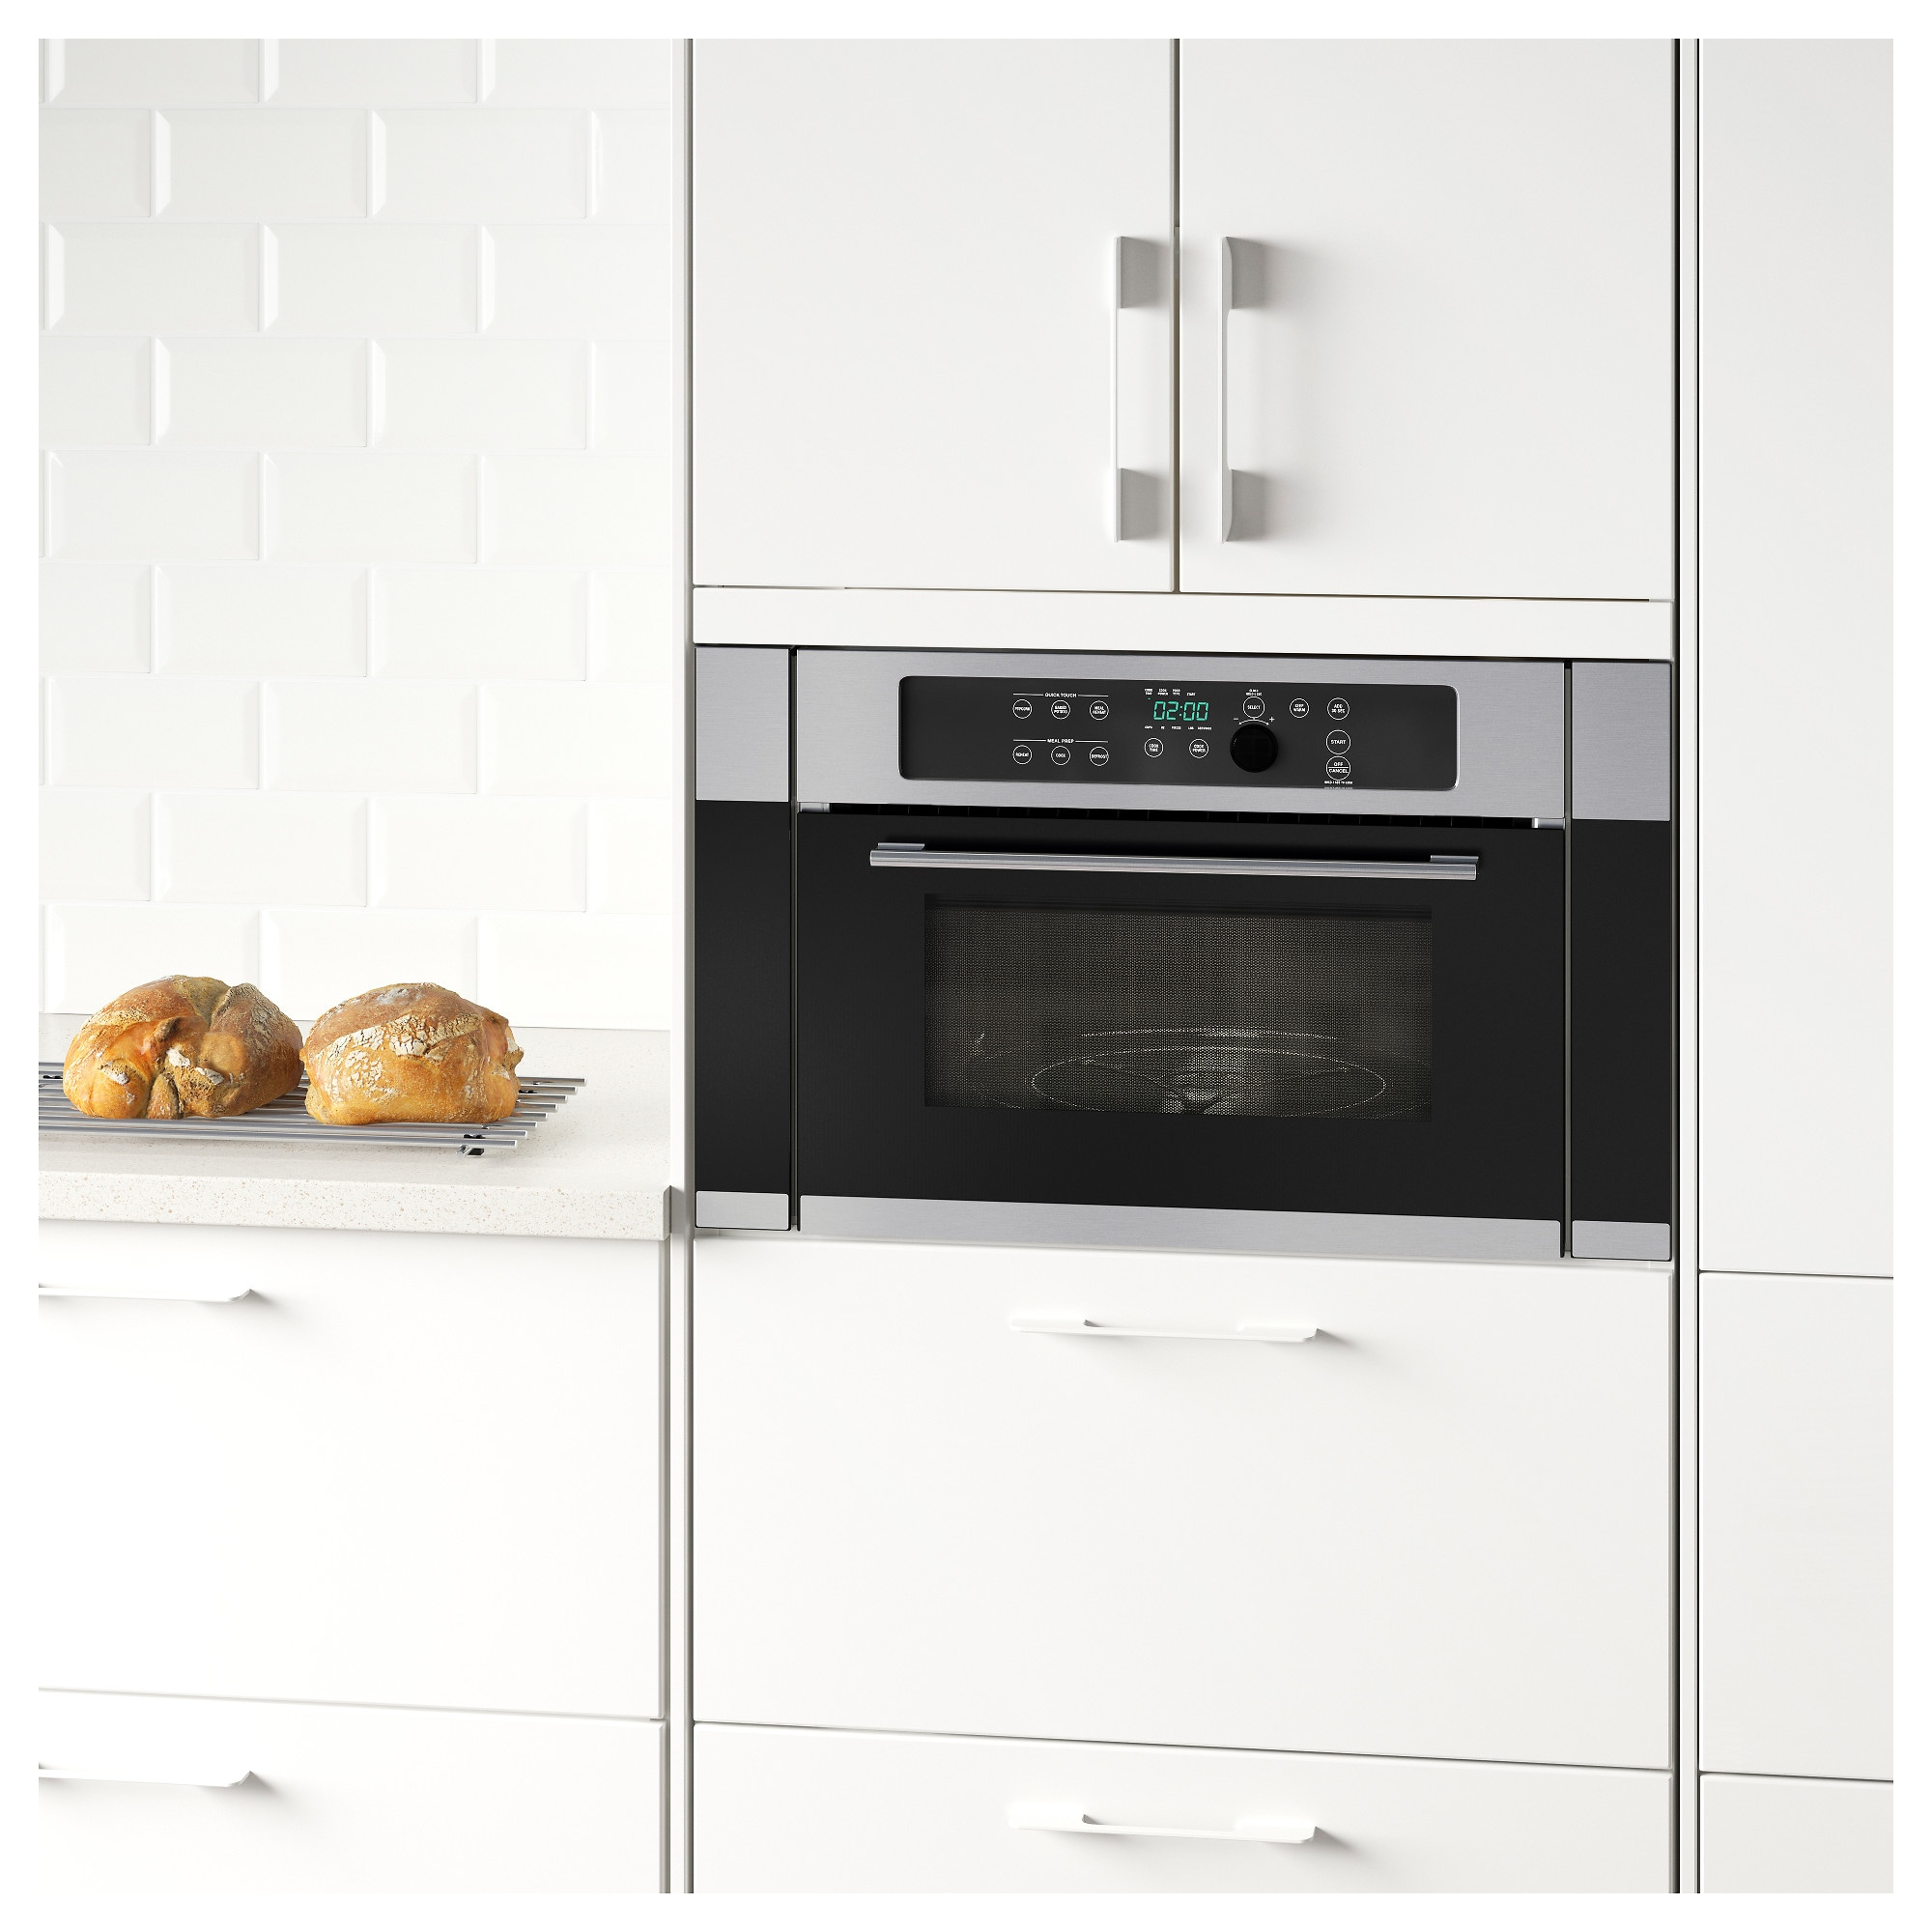 Ikea Nutid Microwave Review Robinsonnetwork Org